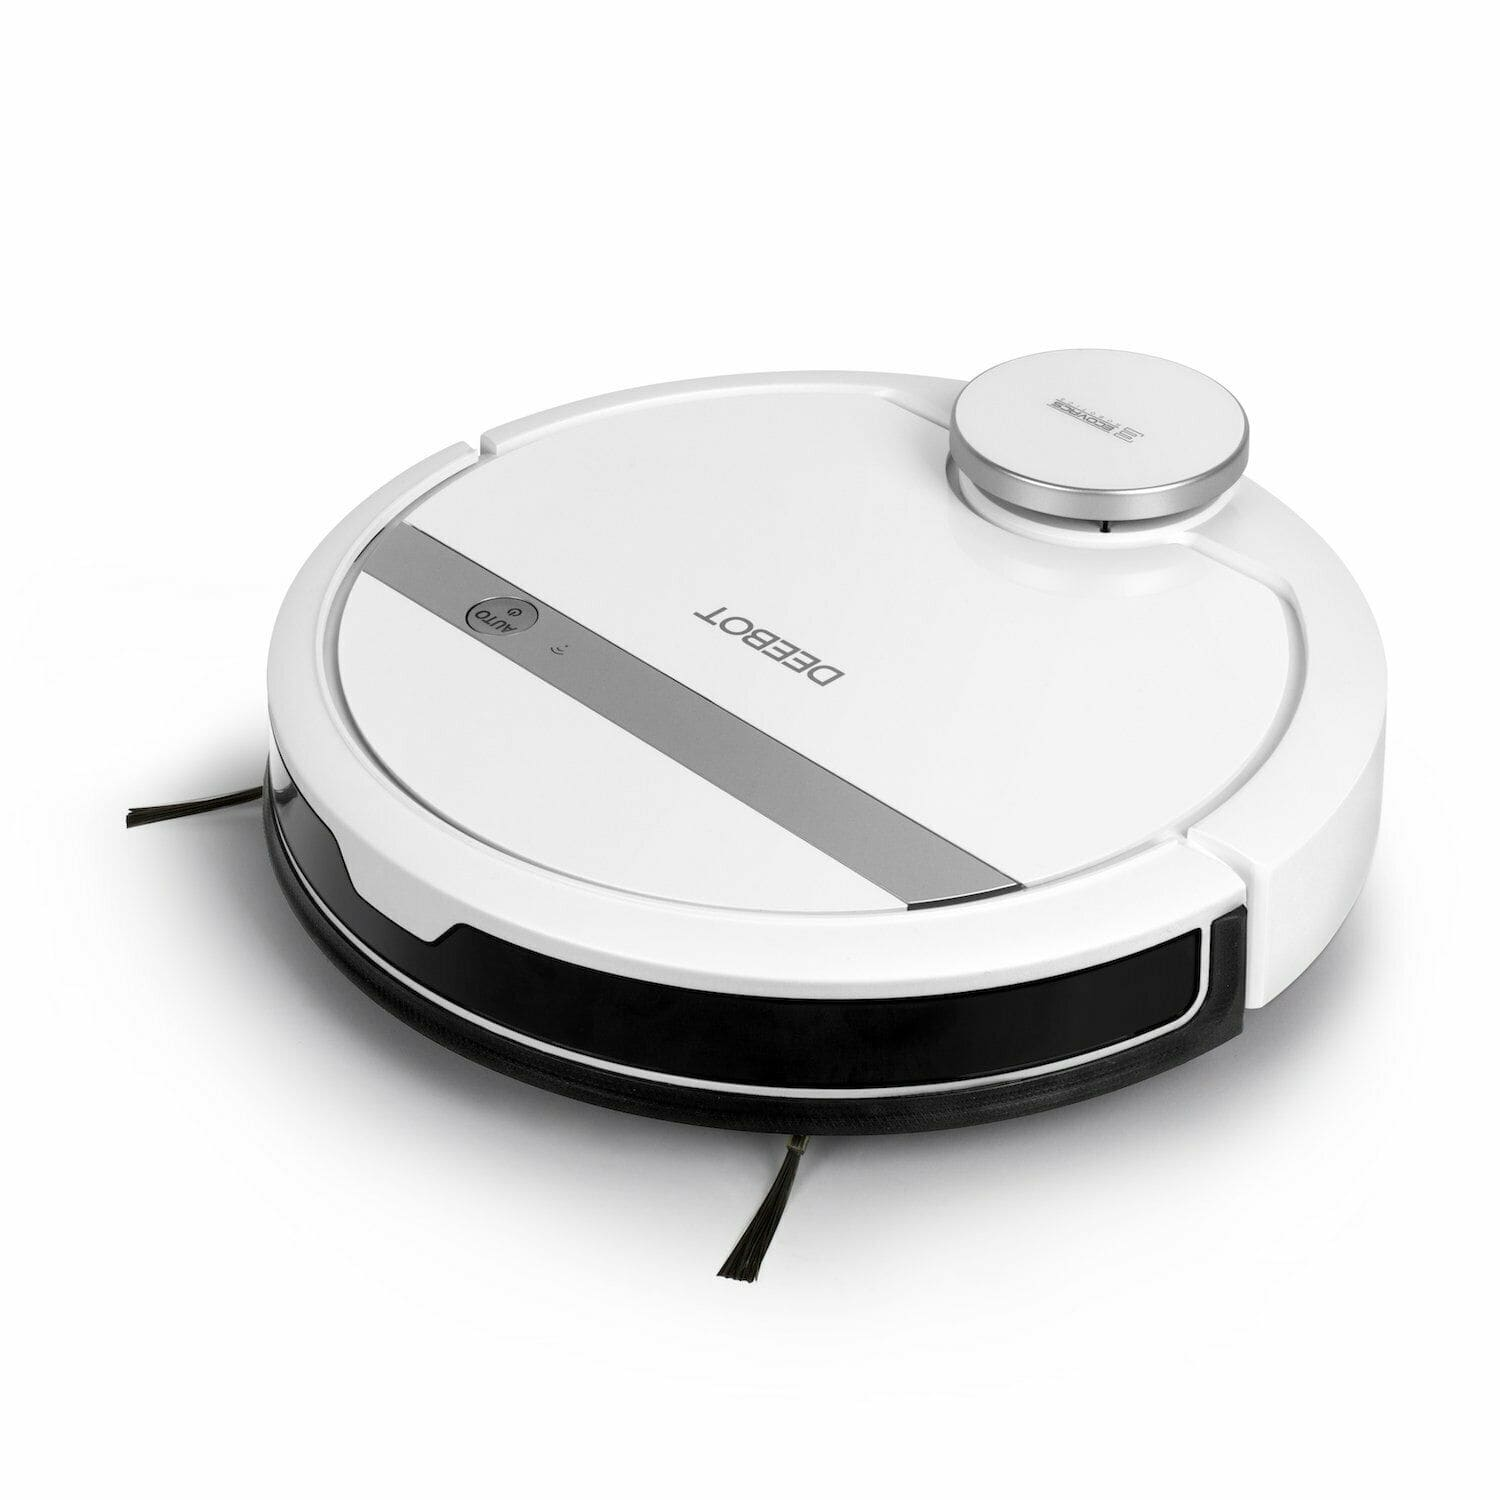 ECOVACS DEEBOT 900 Smart Robotic Vacuum with navi 3.0 - Open Box(Pristine, Brand New condition) - $169.99